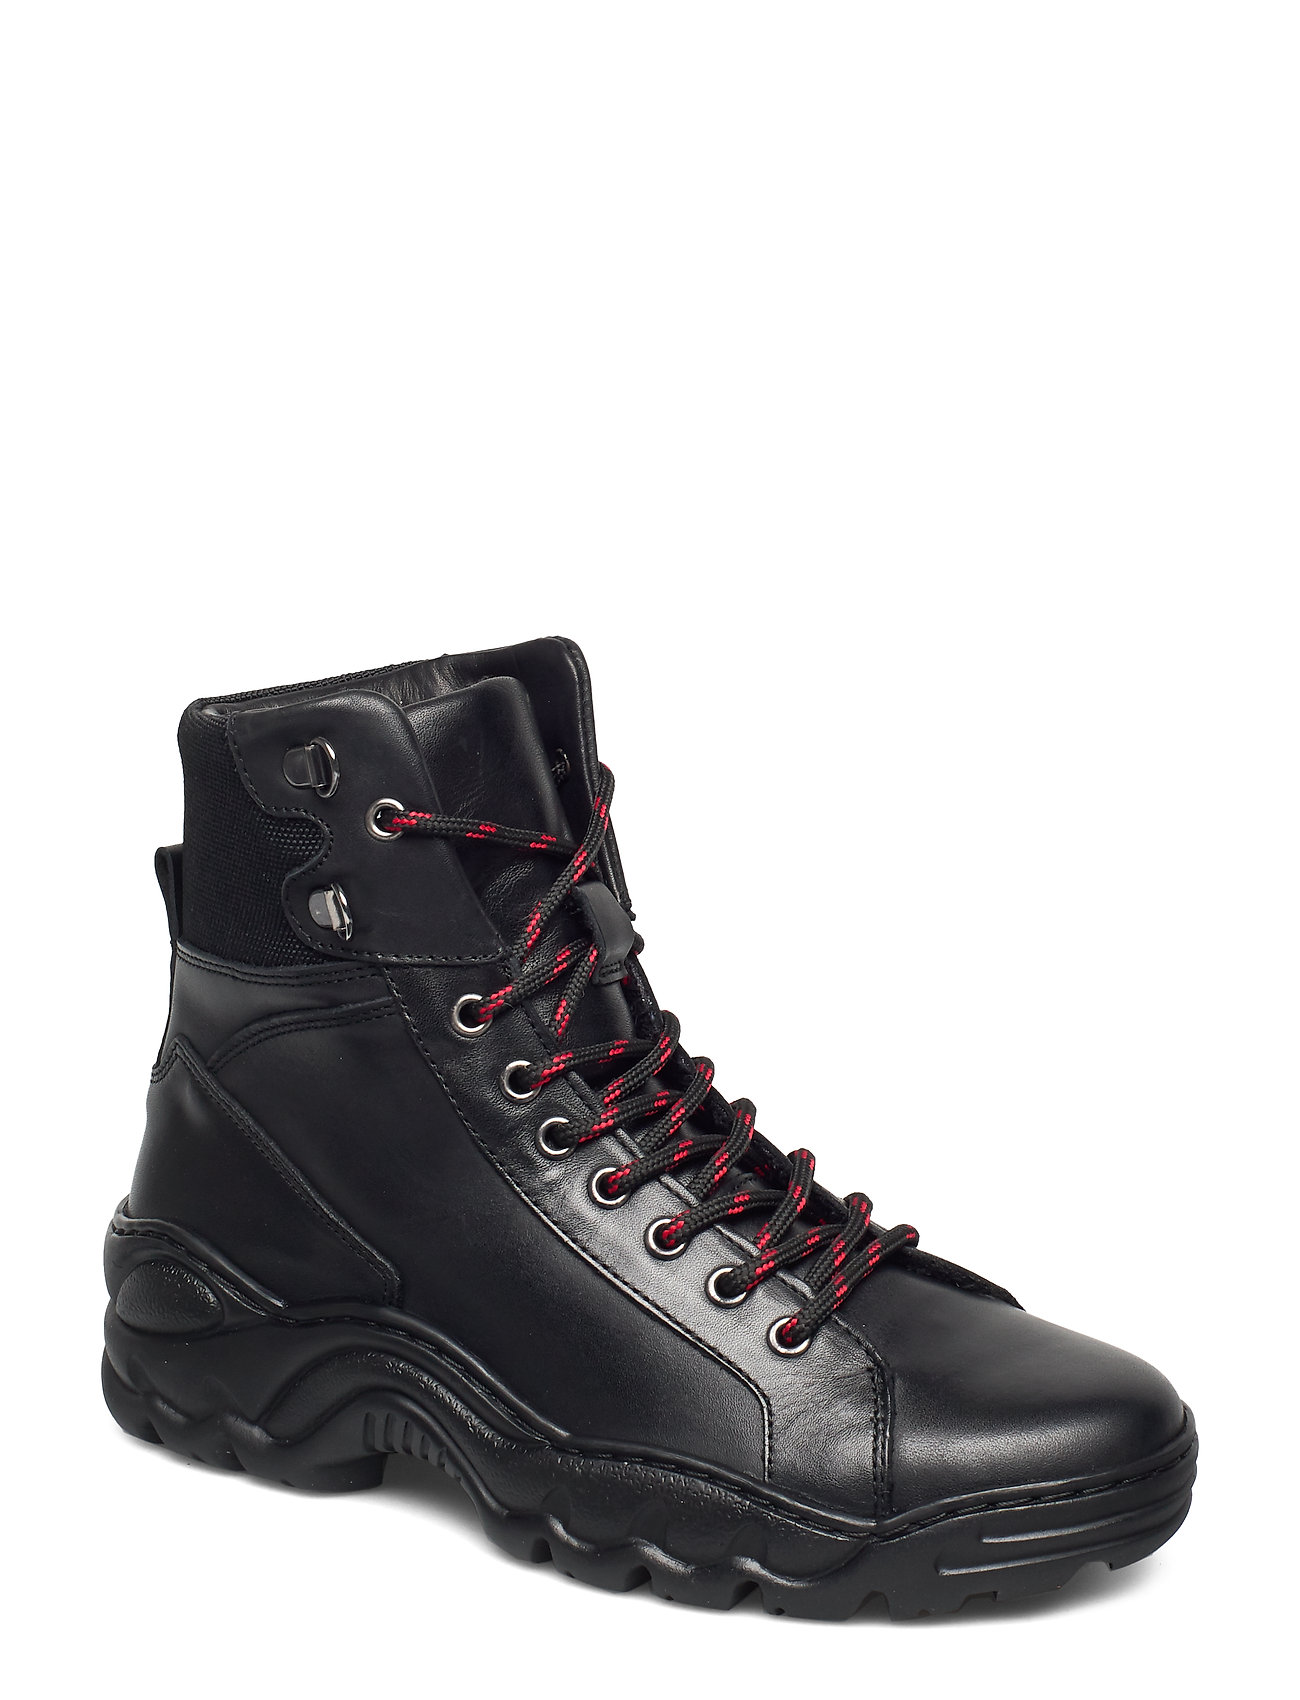 Image of Iceman Hike L Shoes Boots Ankle Boots Ankle Boot - Flat Sort Shoe The Bear (3406190595)